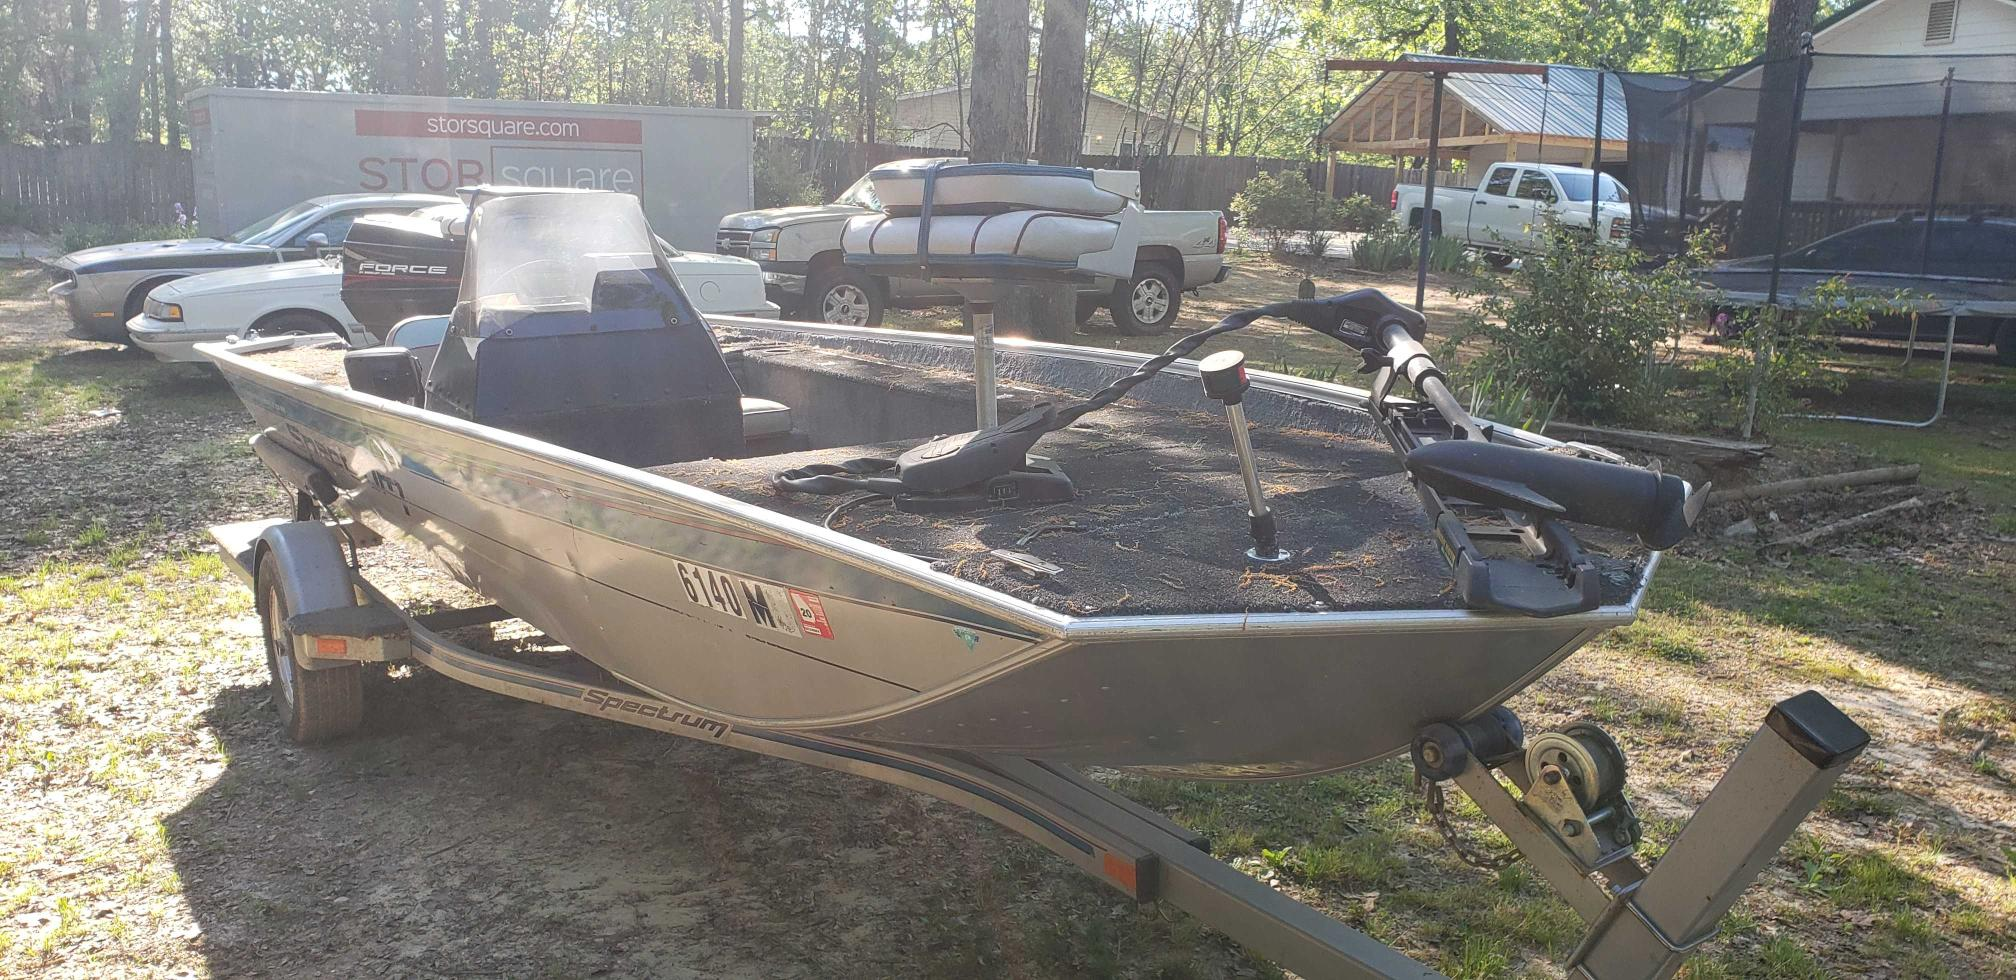 1994 Spec Boat for sale in Cartersville, GA